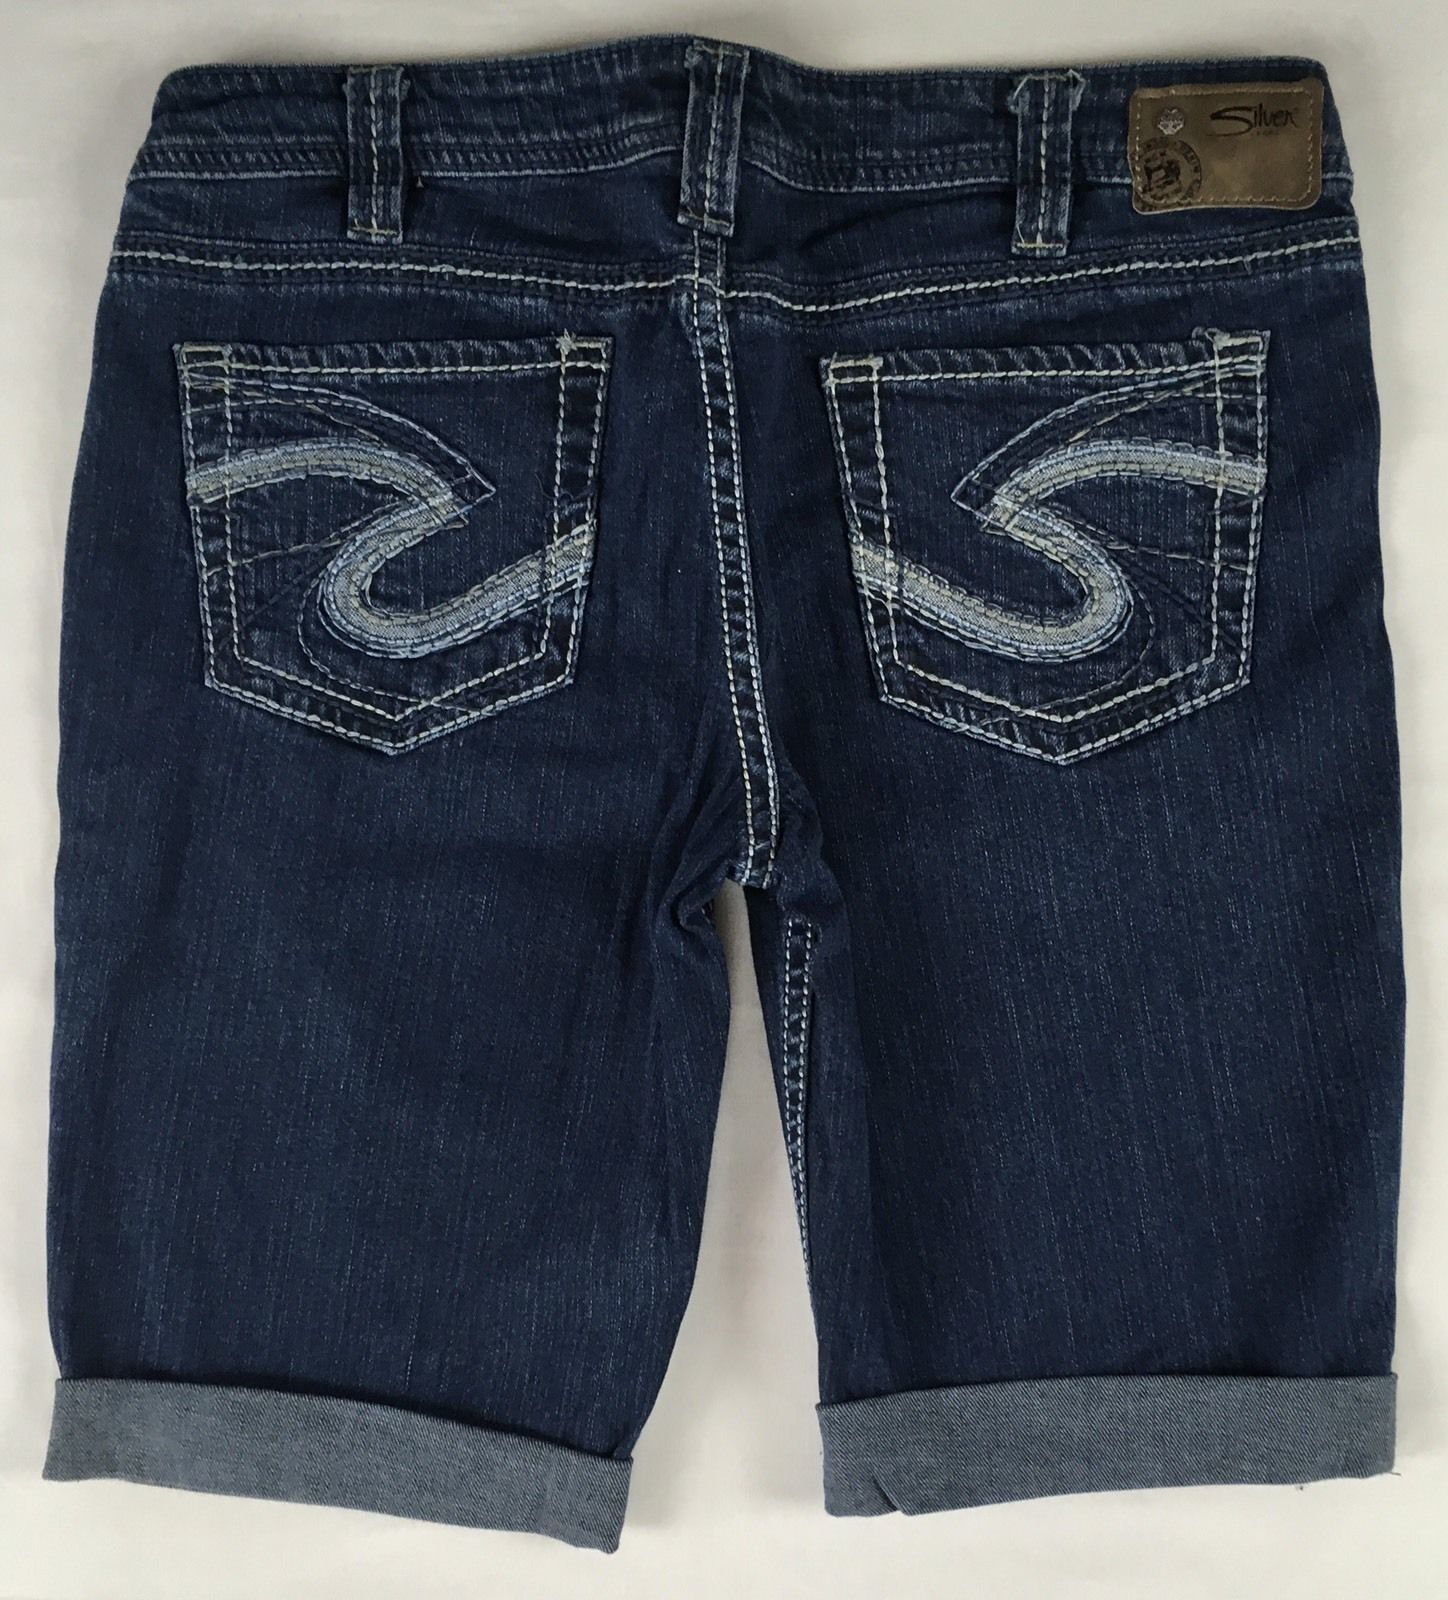 SILVER Jeans Sale Buckle Cheap Mid Rise Aiko Denim Jean Stretch Mid Shorts 32